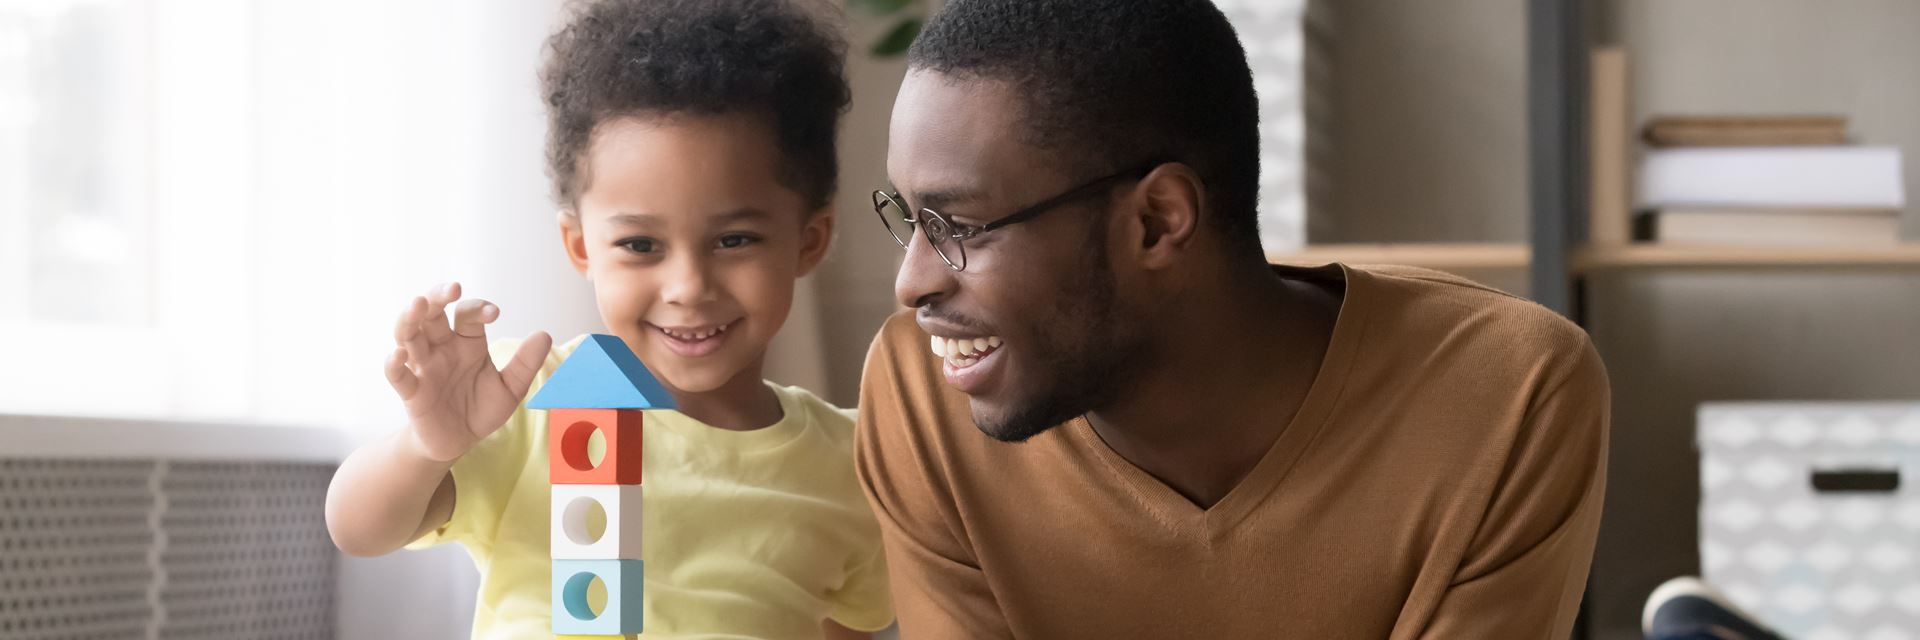 Fostering Allowance | Foster Care Pay | Fostering People